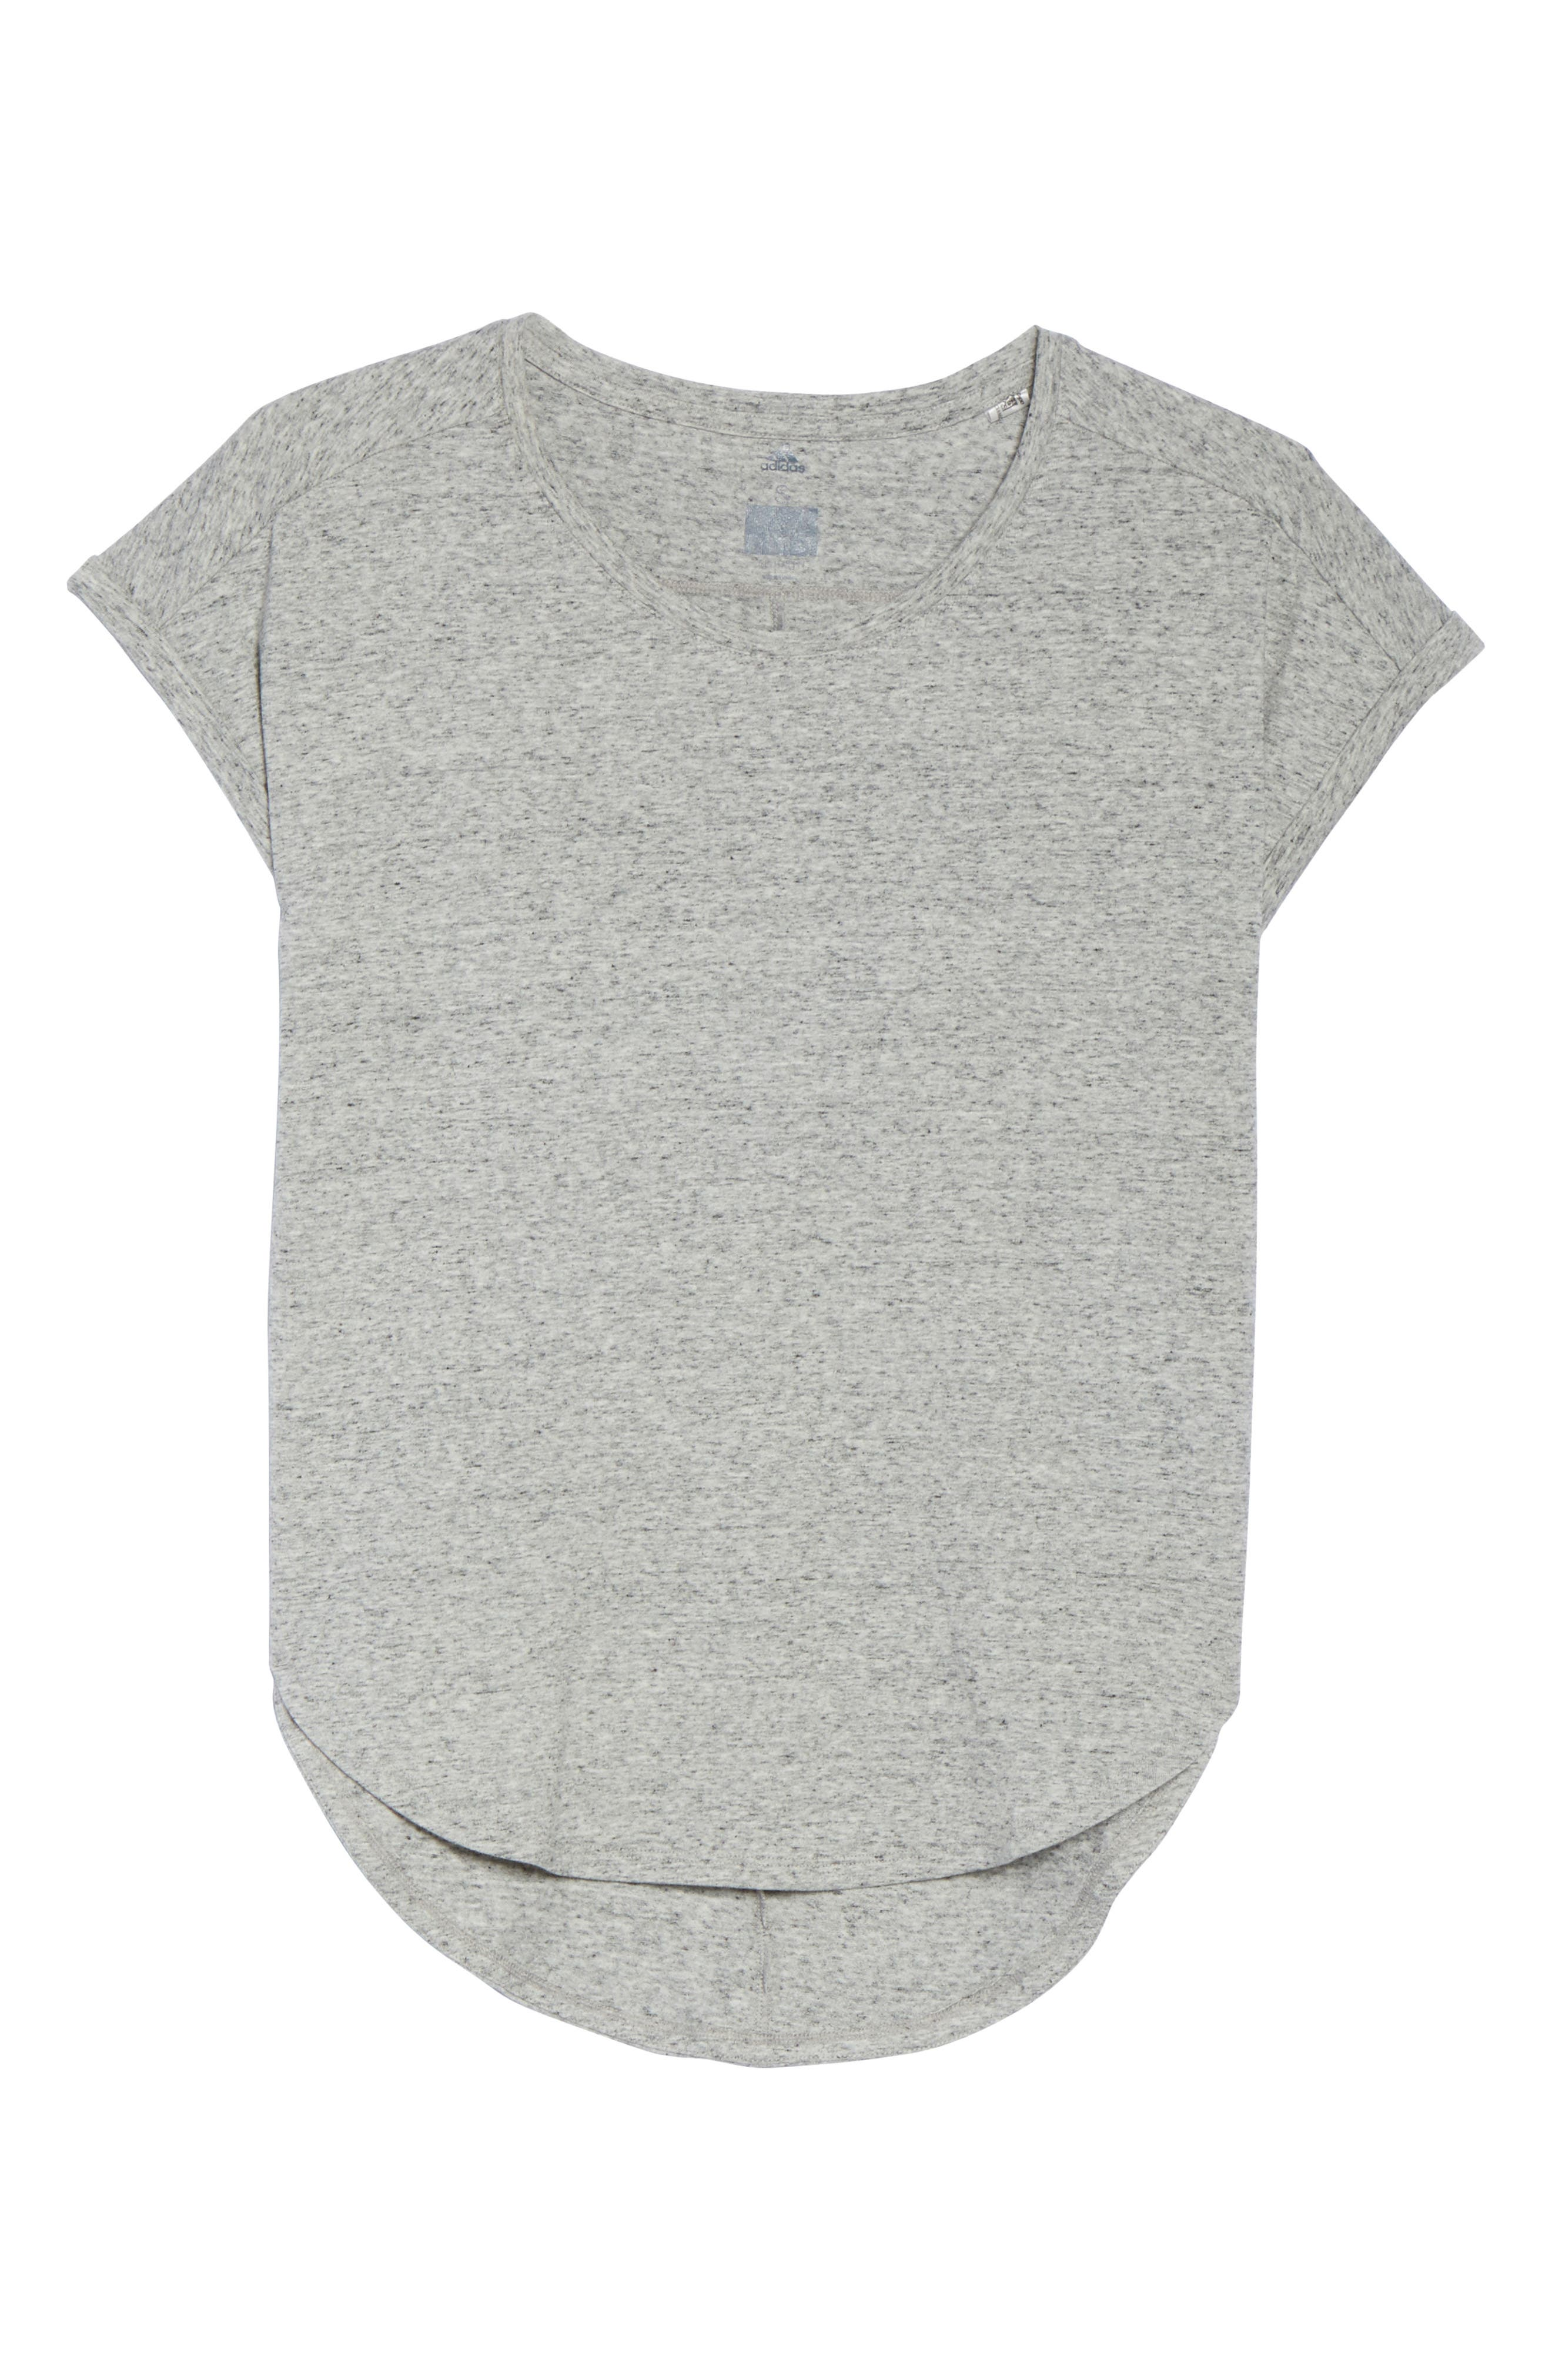 Performer High/Low Climalite<sup>®</sup> Tee,                             Alternate thumbnail 7, color,                             Grey